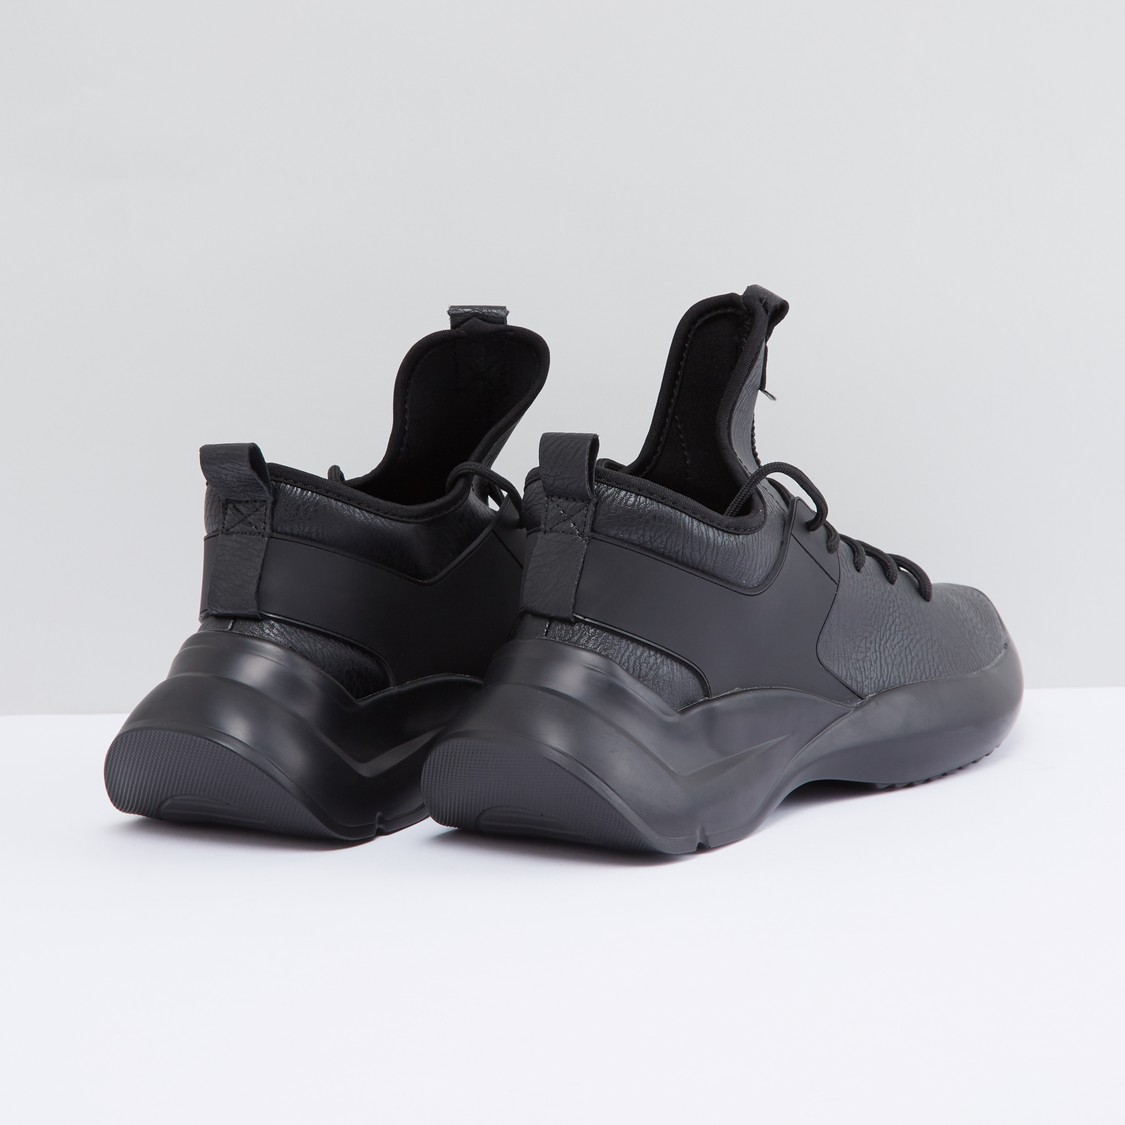 Textured Lace-Up High Top Sports Shoes